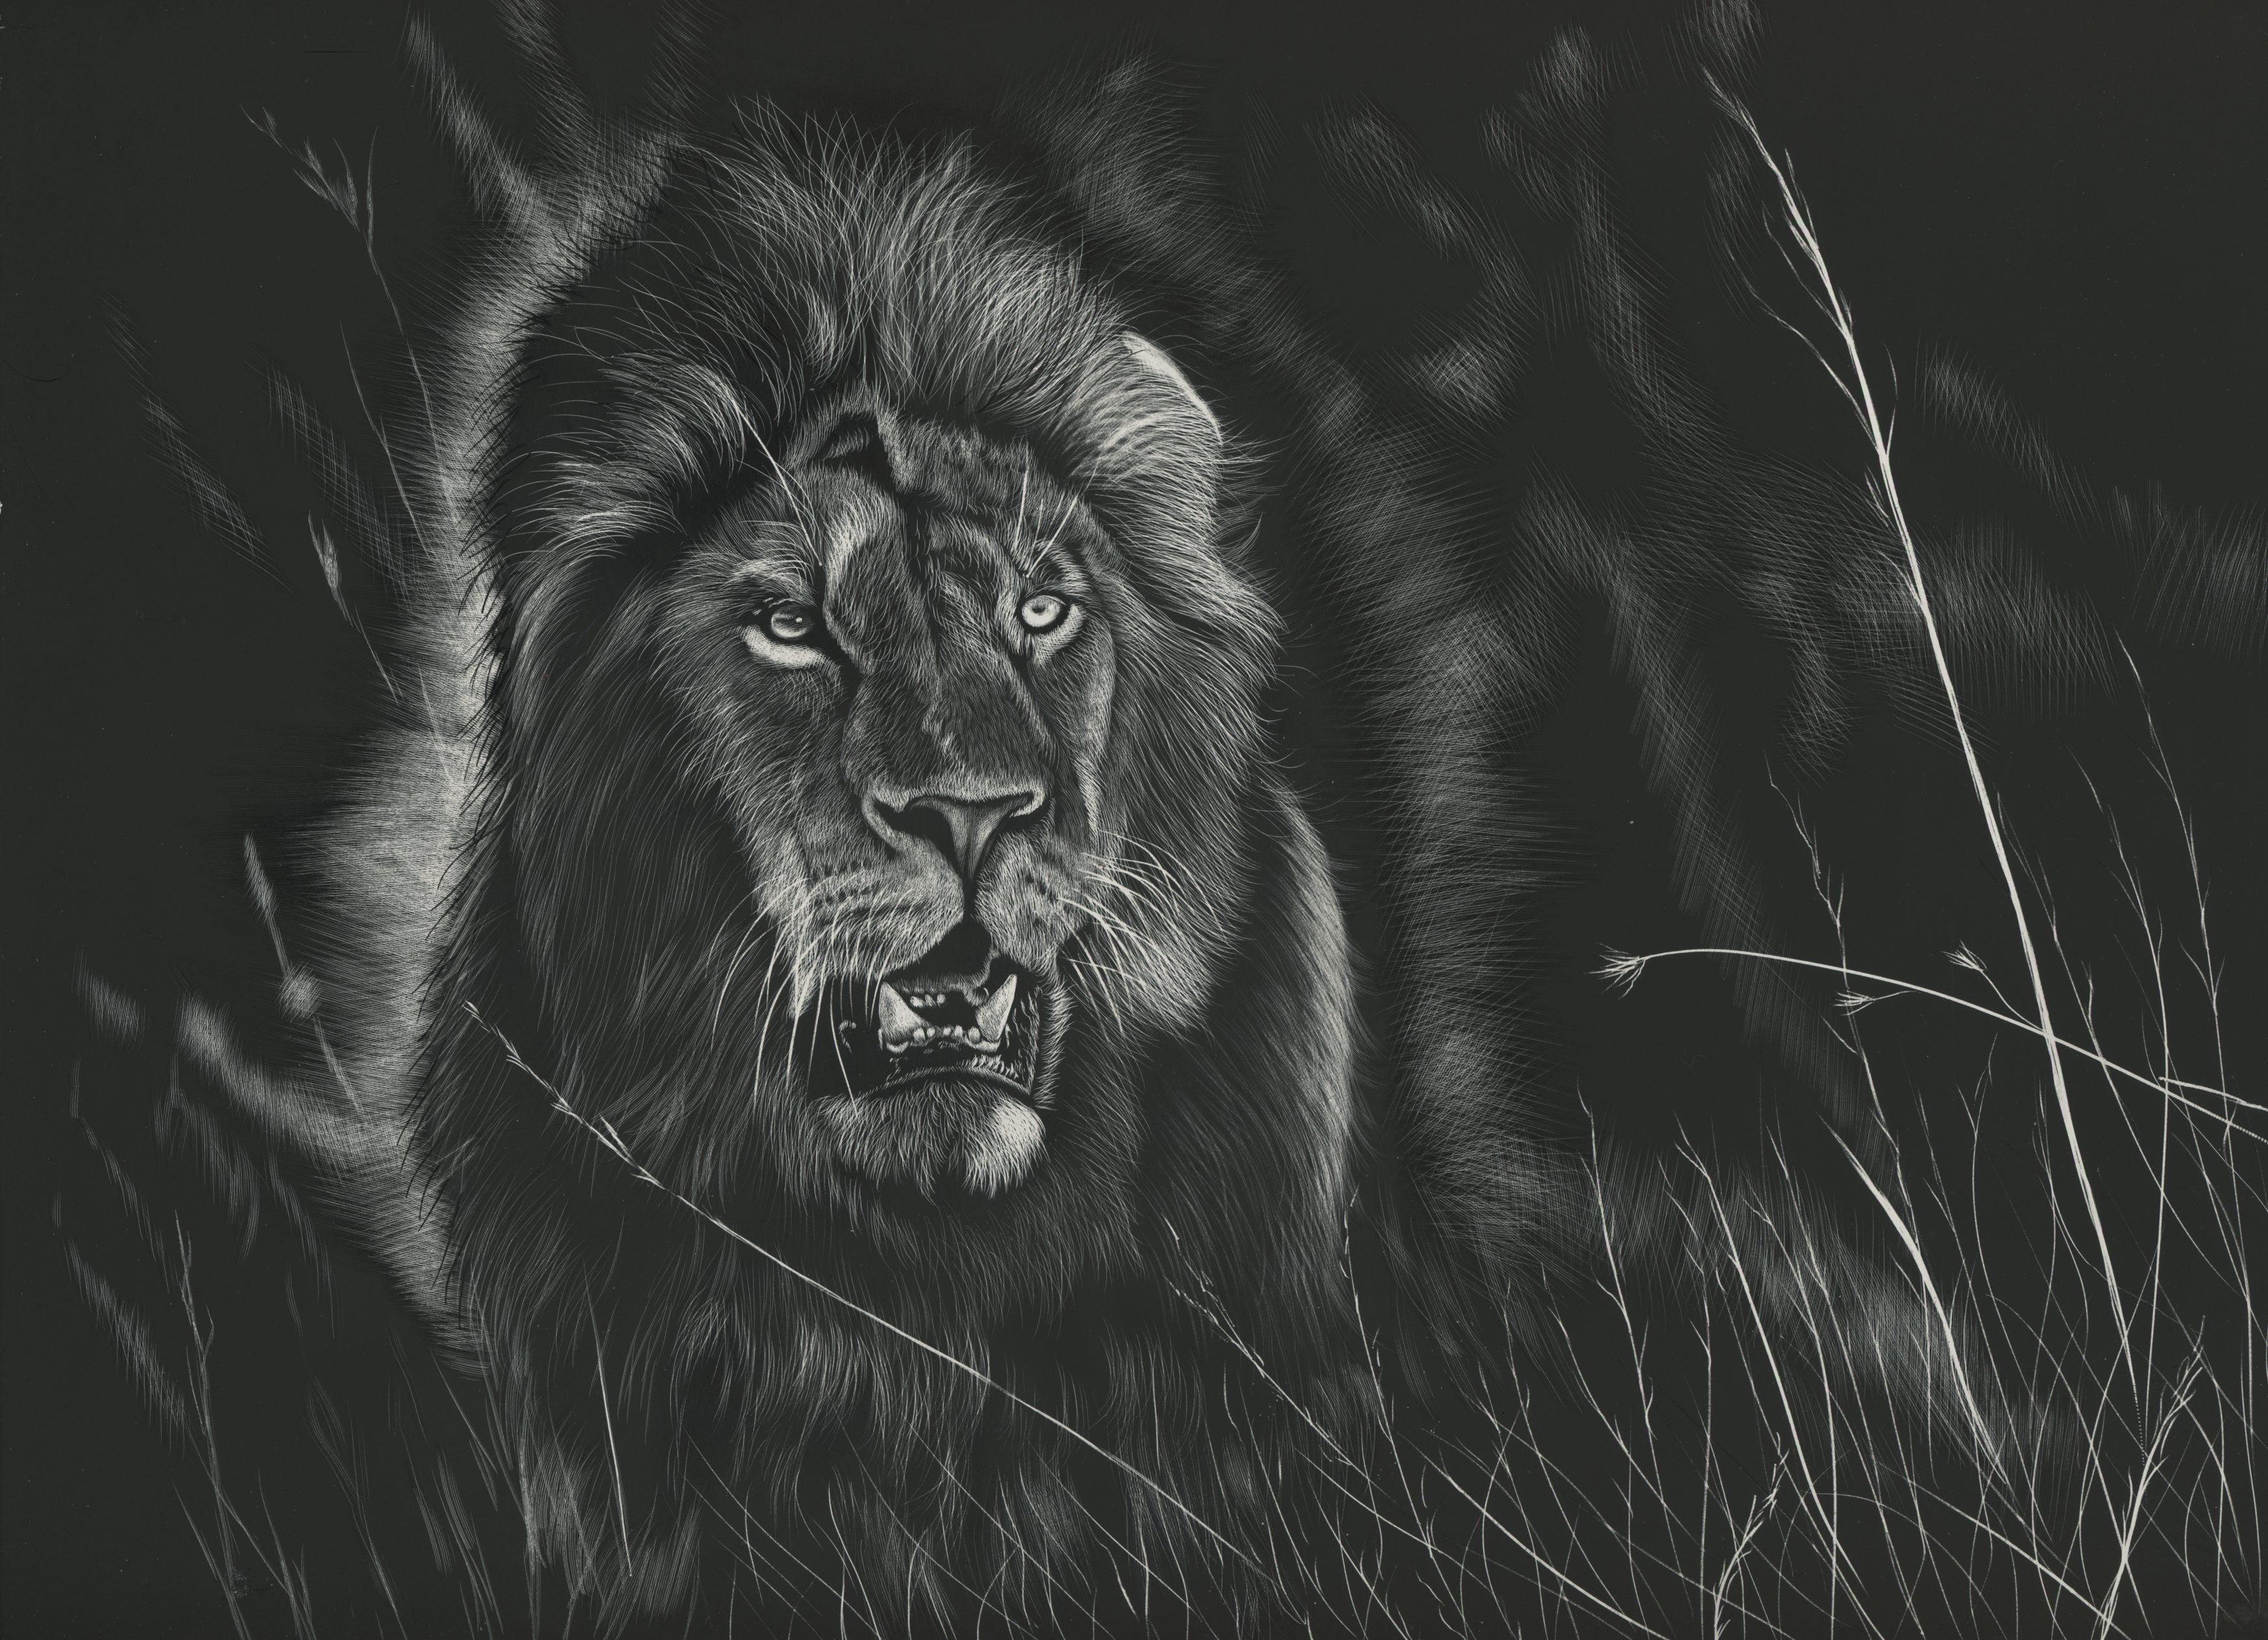 Lion art black and white